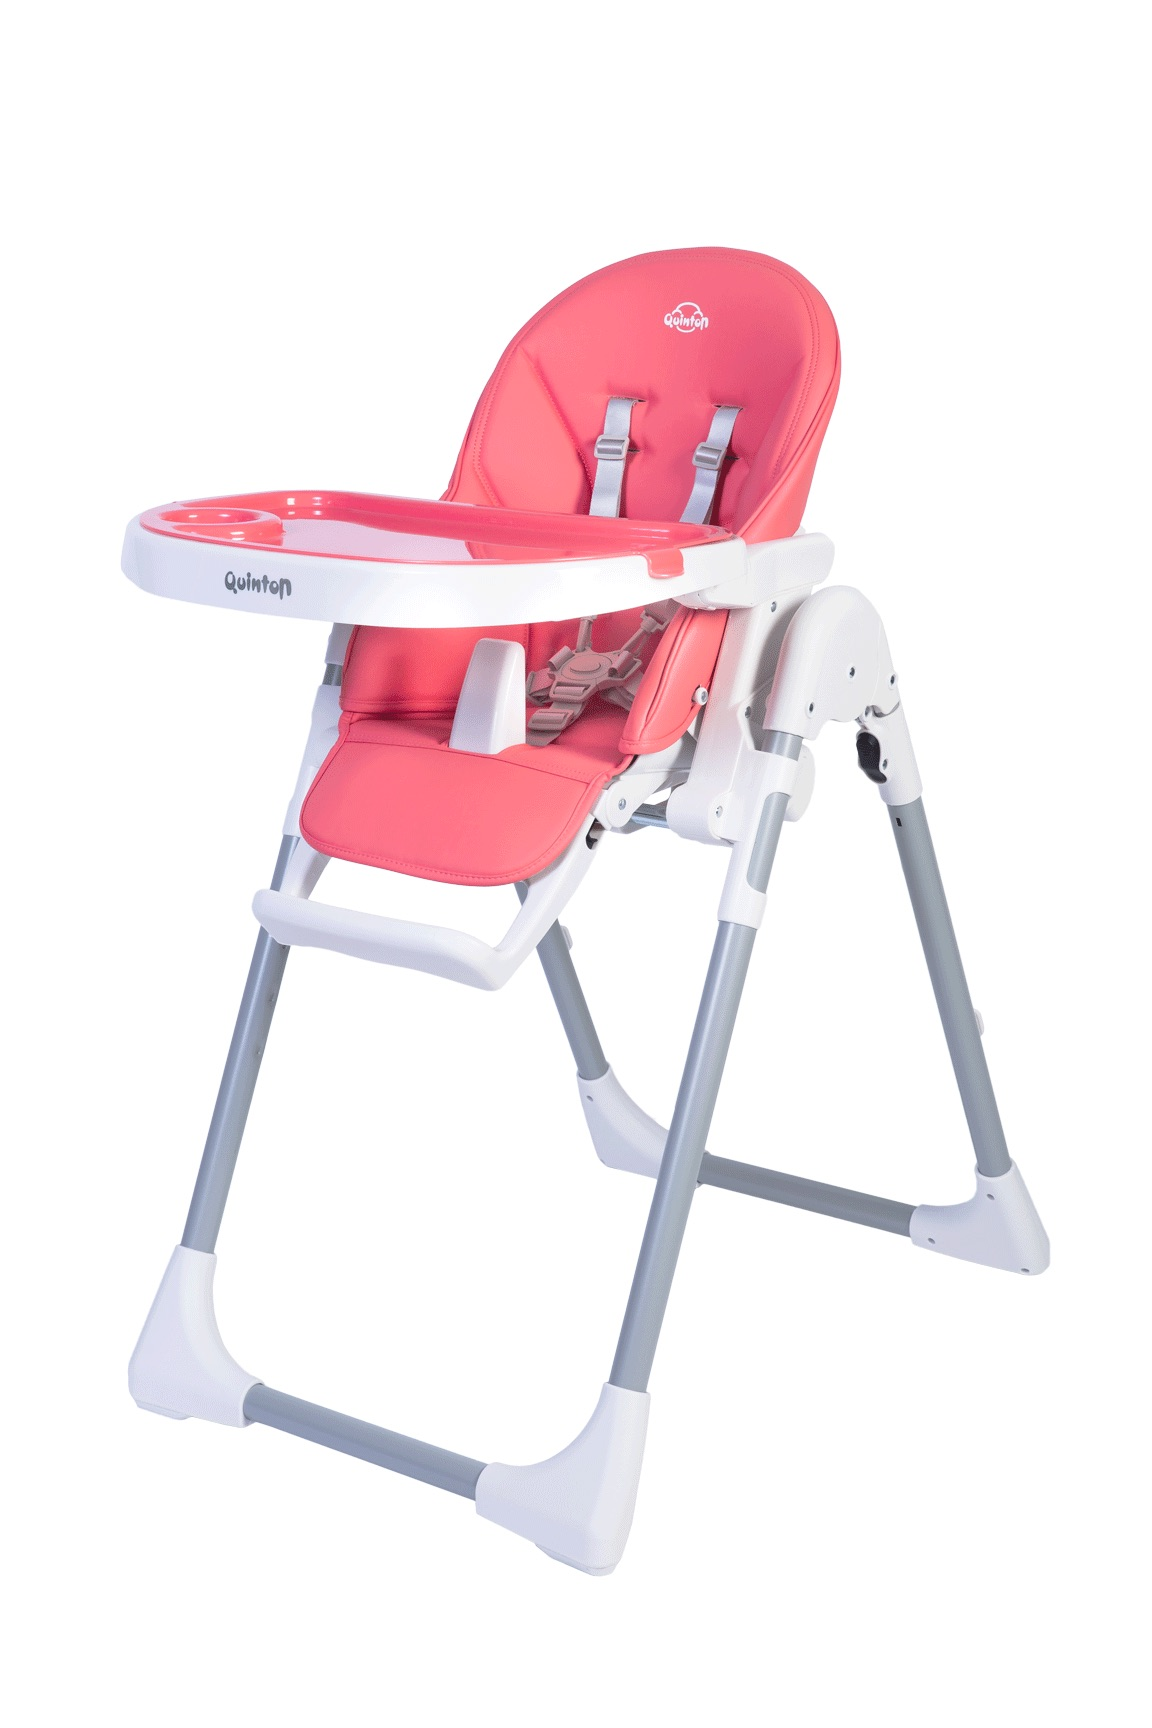 Quinton Hwugo Baby High Chair Multifunction Pink. U2039 U203a